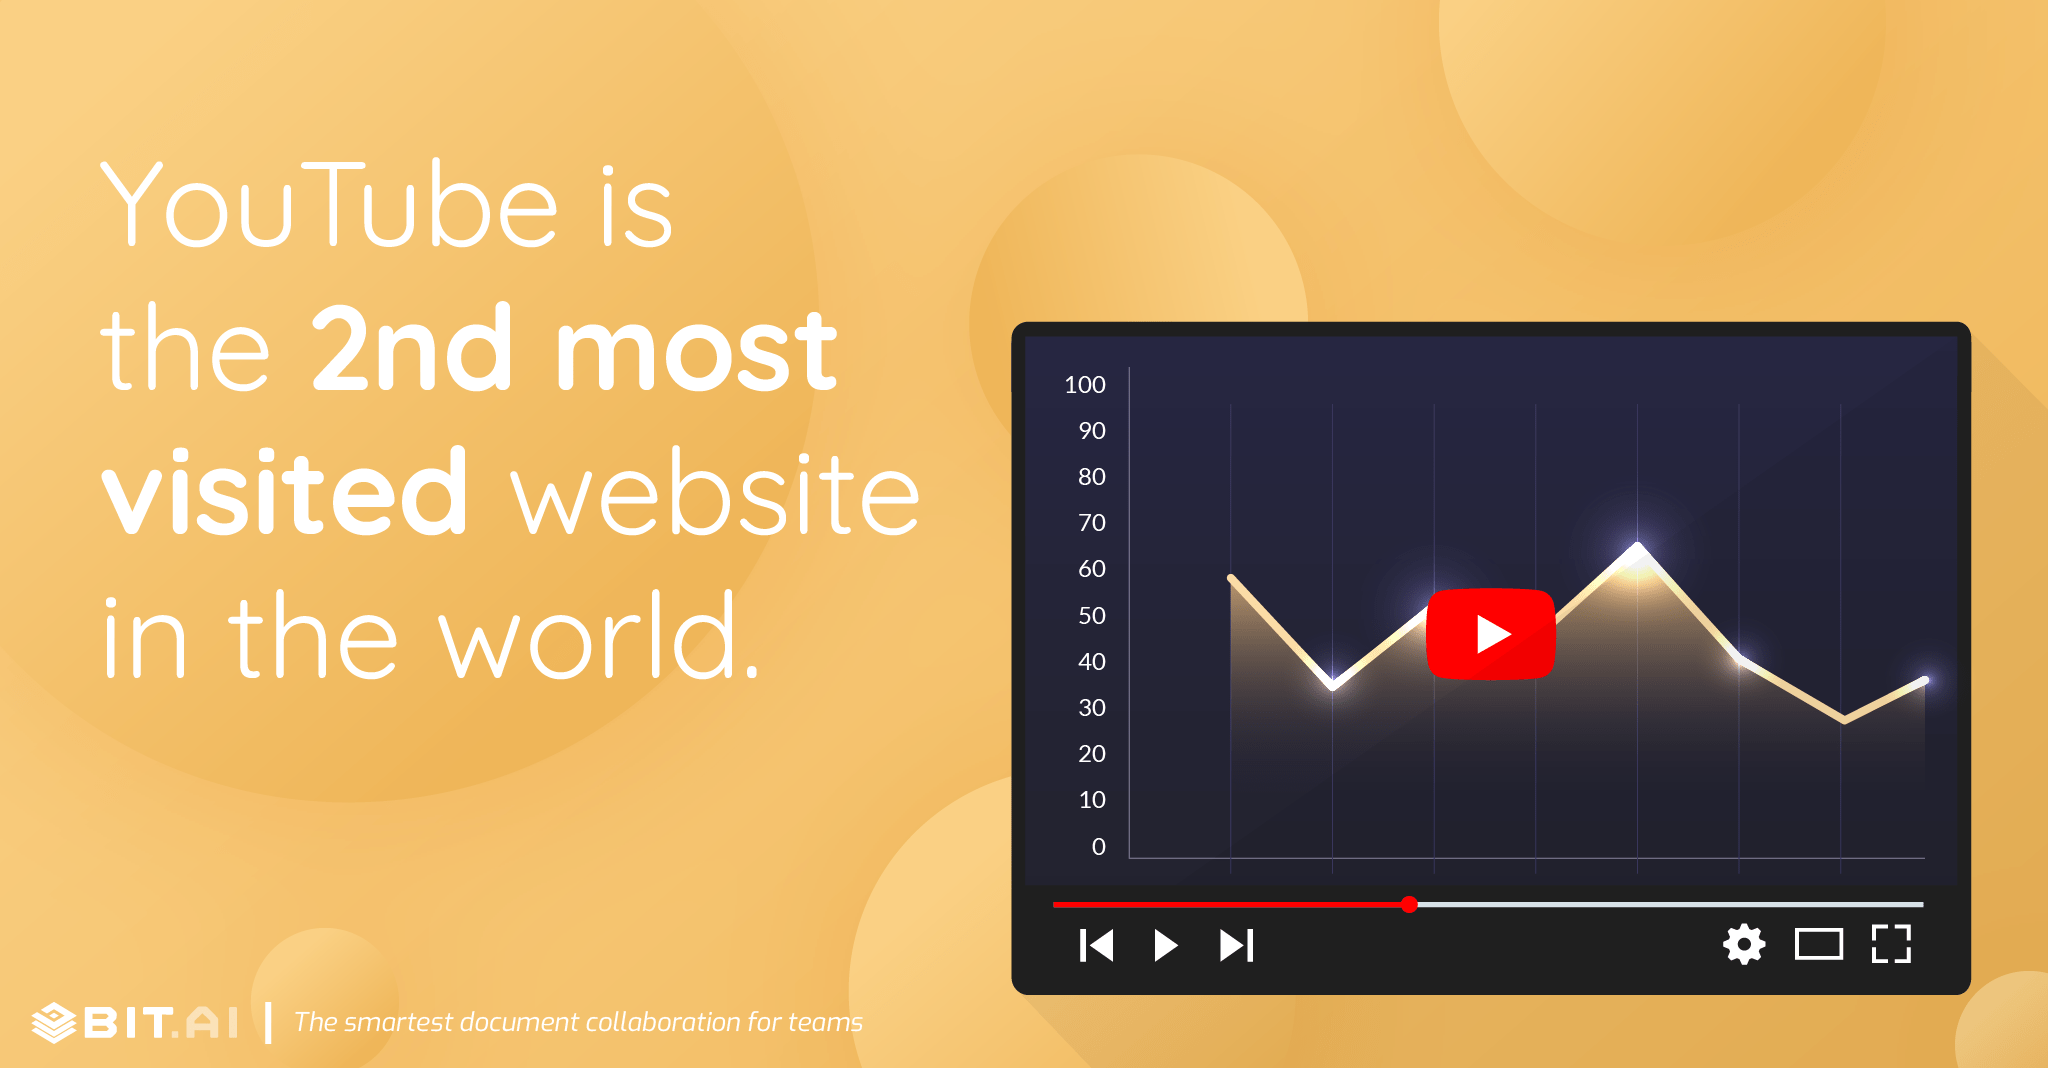 YouTube is the 2nd most-visited website in the world.